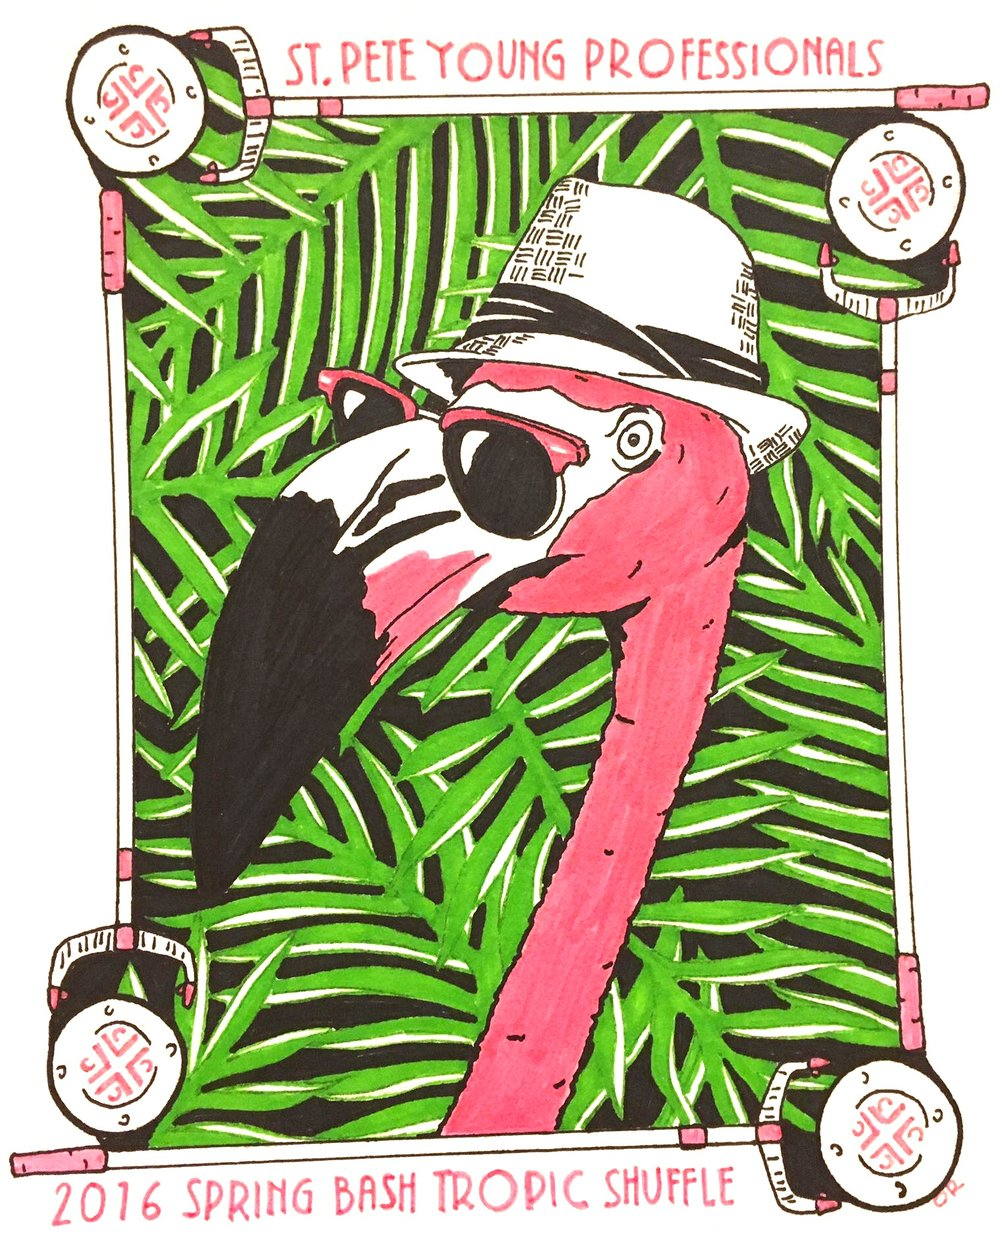 Outspoken Rhino SPYP flamingo T-shirt design